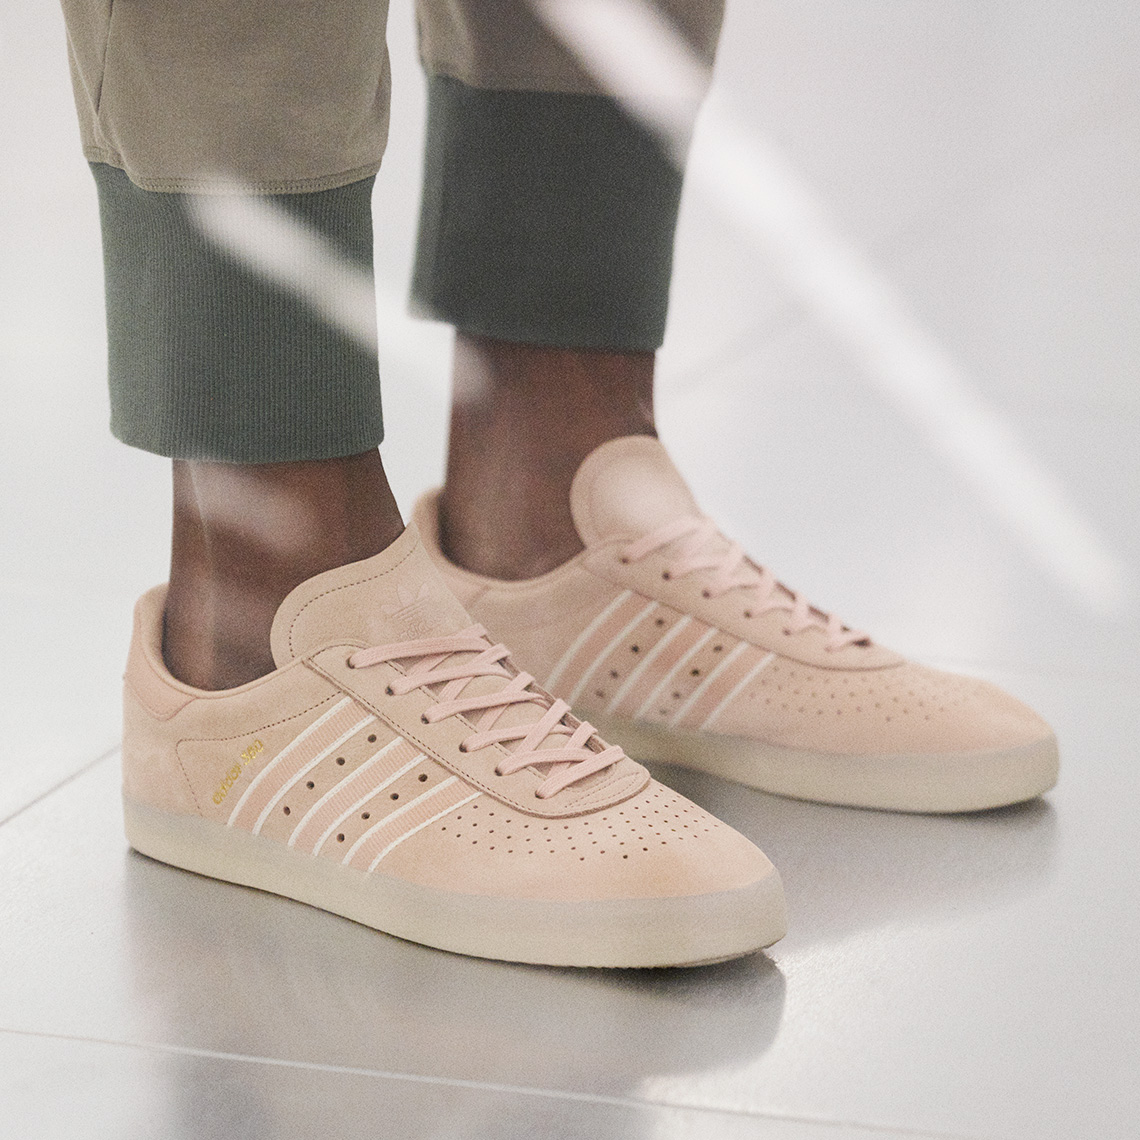 newest 2a371 14cfd Oyster Holdings x adidas 350. Release Date March 29th, 2018. Releasing At  adidas.com